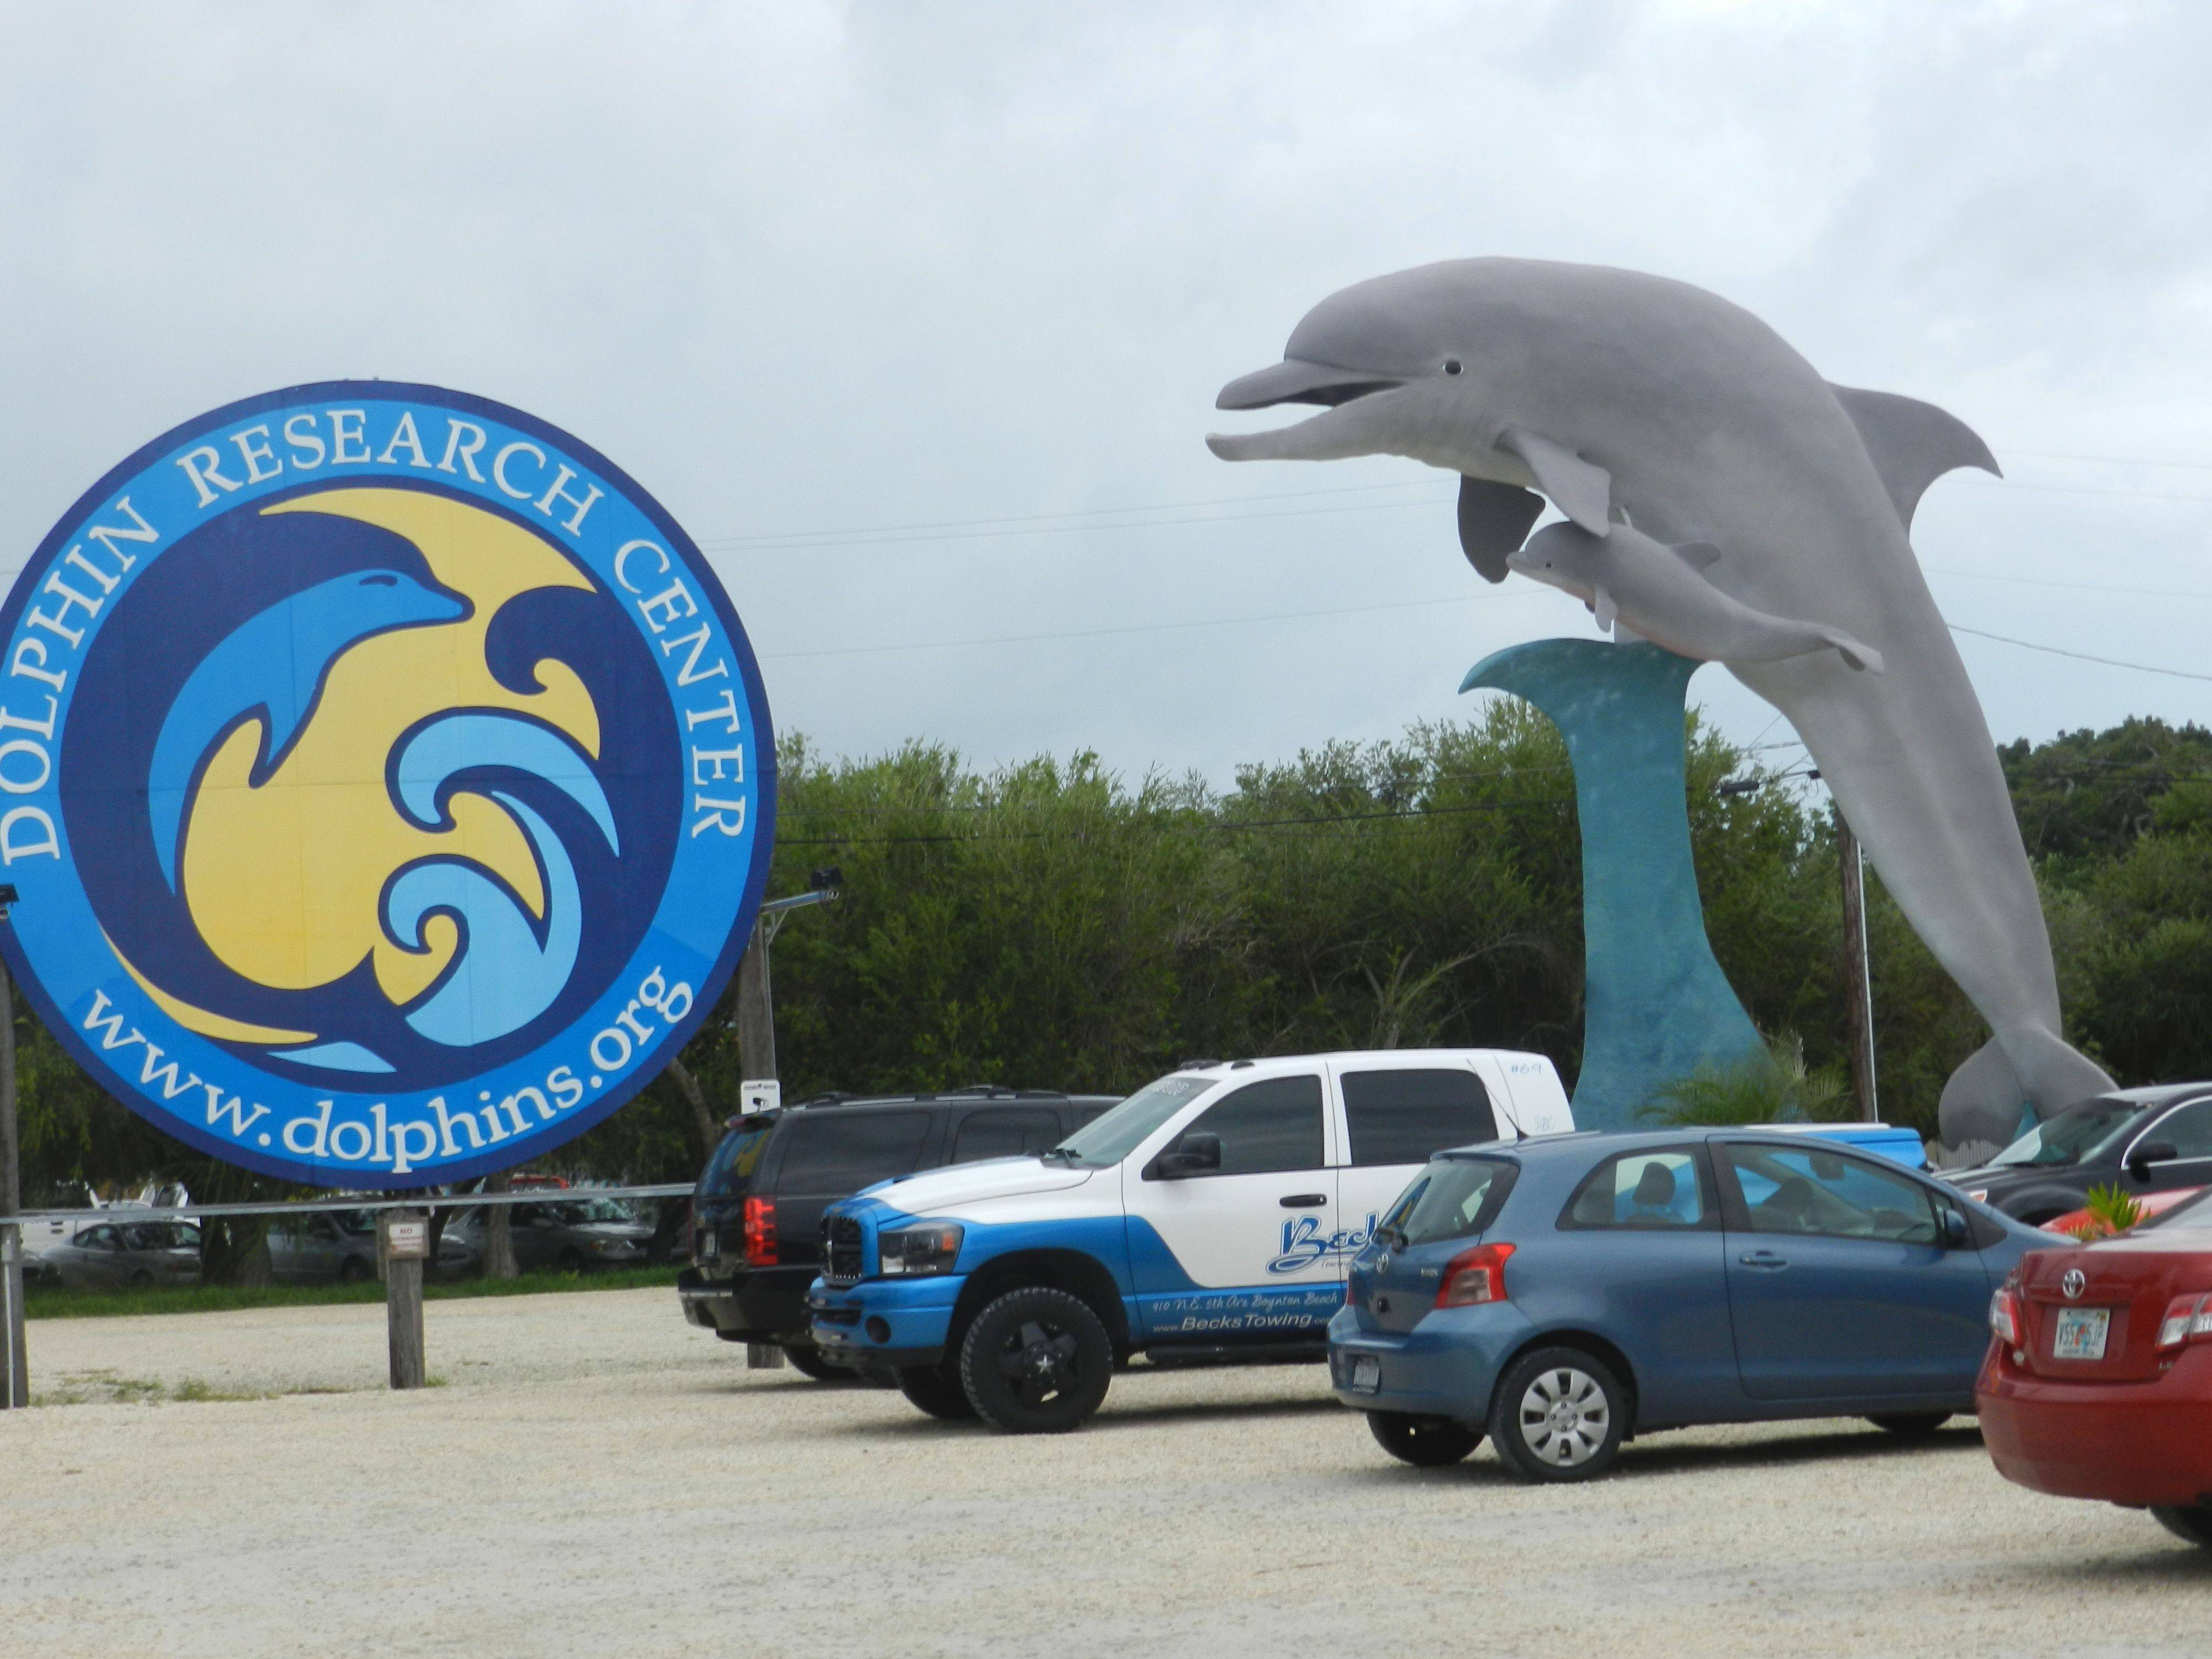 Dolphin Research Center.